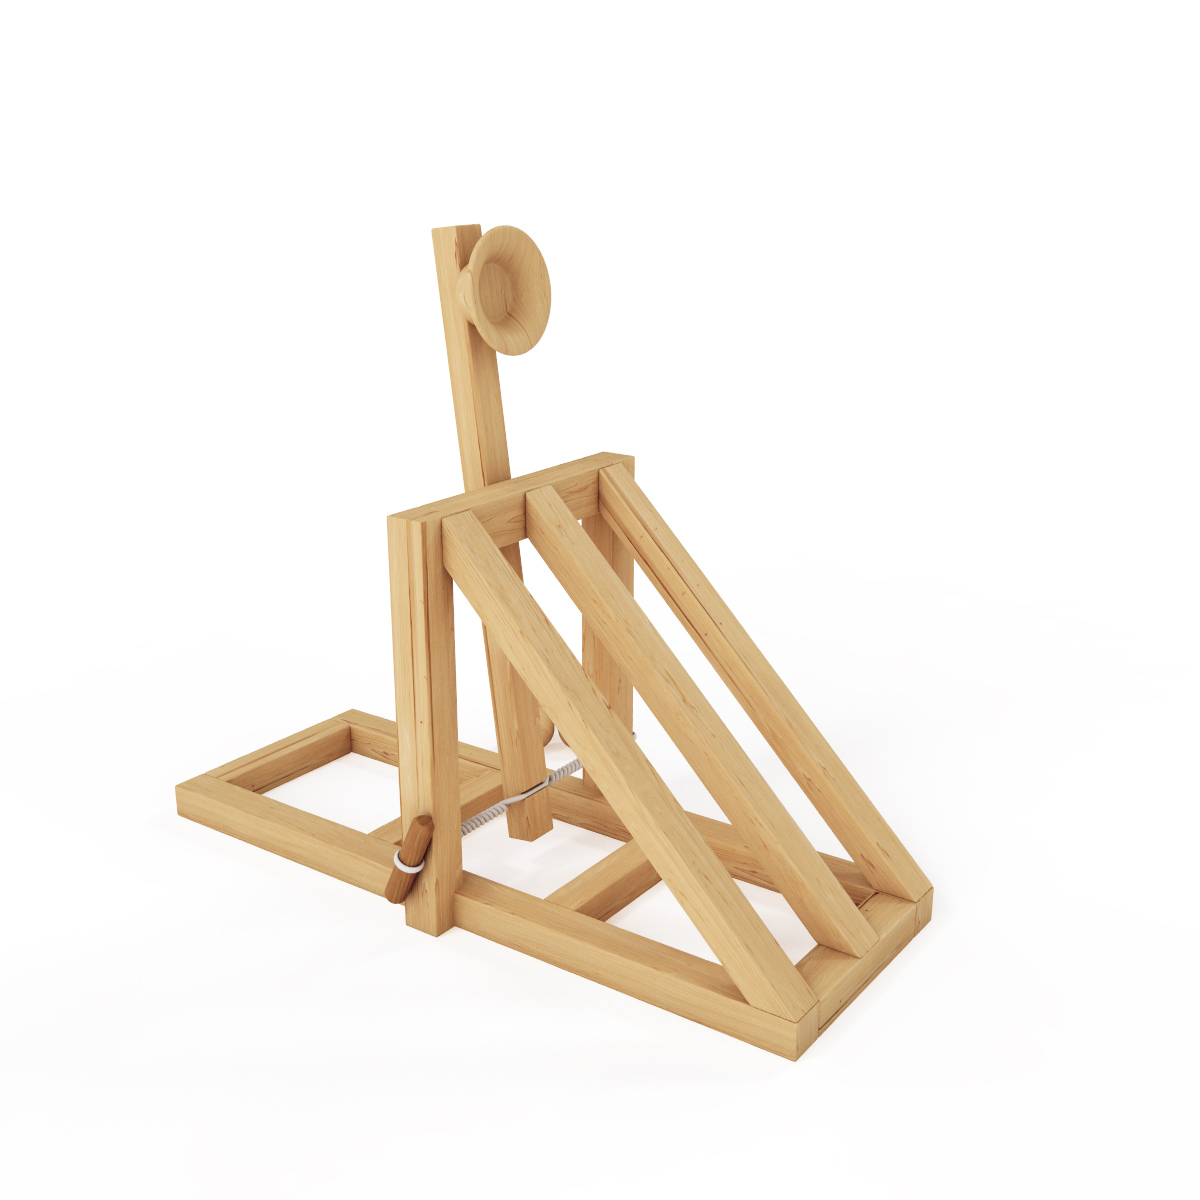 1200x1200 Gallery Pictures Of A Catapult,